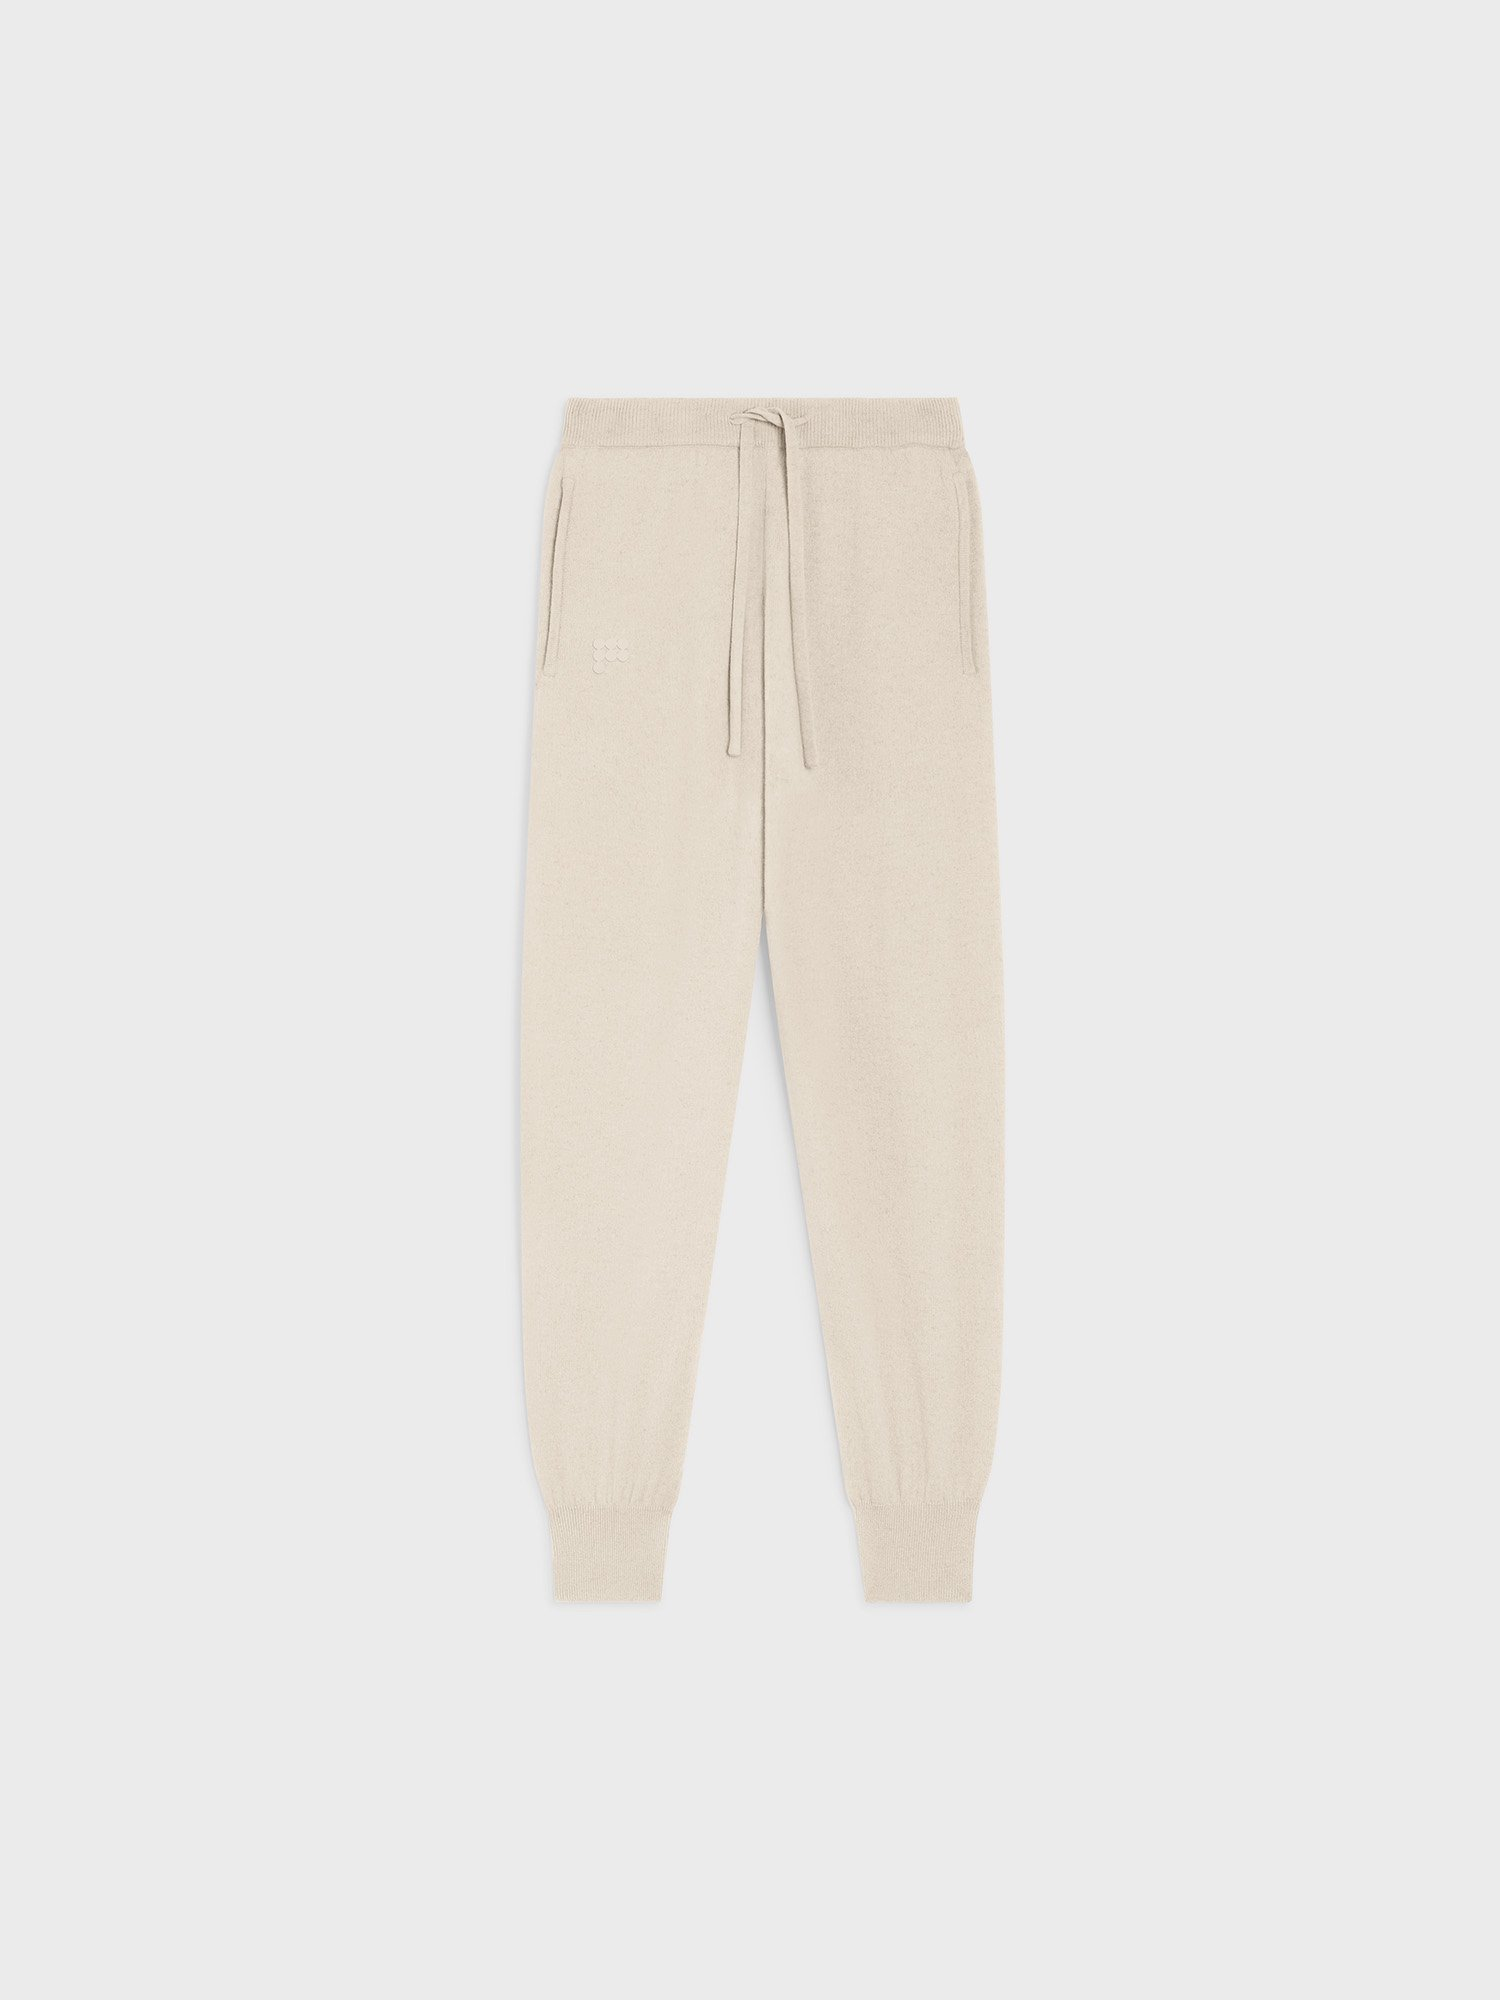 Women's Recycled Cashmere Track Pants